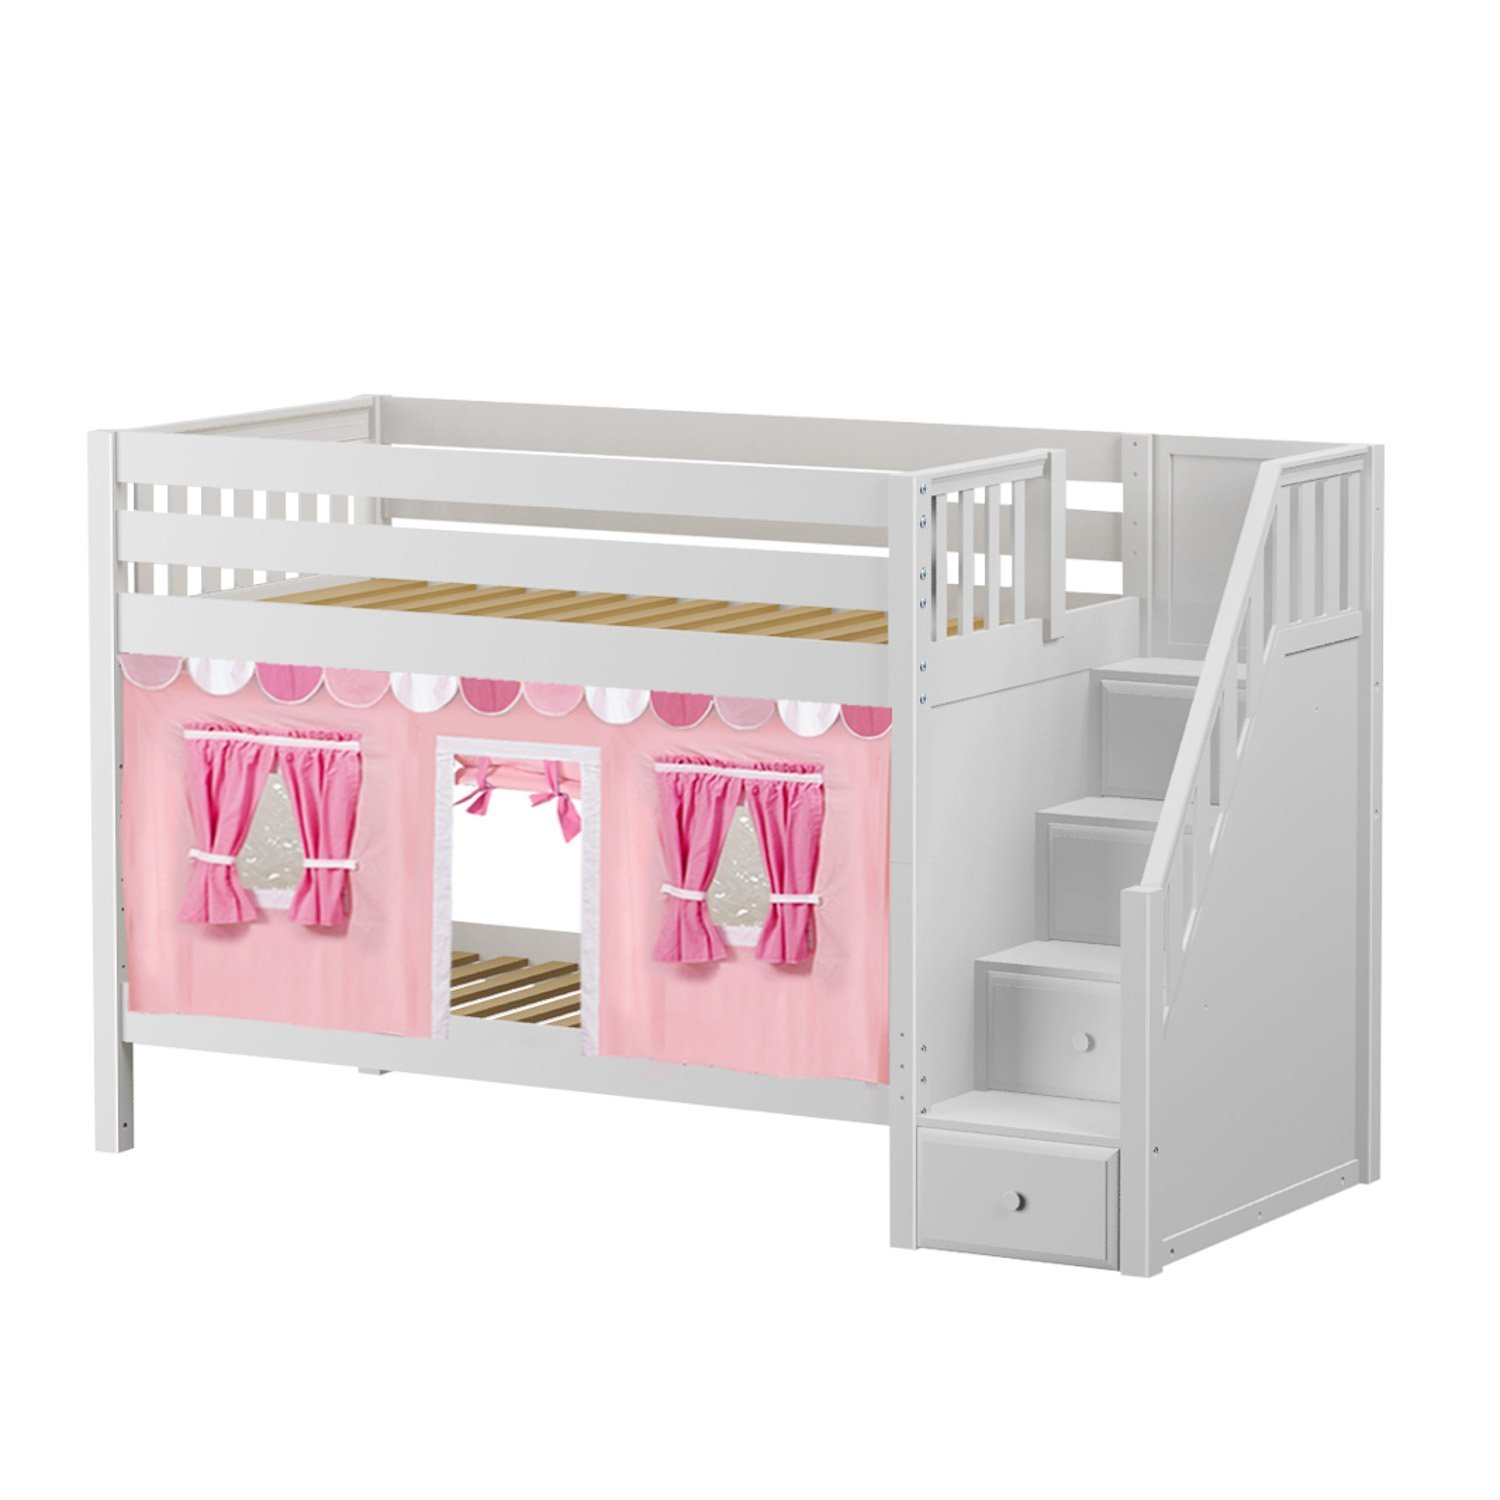 Maxtrix Solid Hardwood Twin/Twin Low Bunk Bed with Storage Staircase Entry and Low Bunk Curtains, White Finish, Pink, Soft Pink, and White Fabric